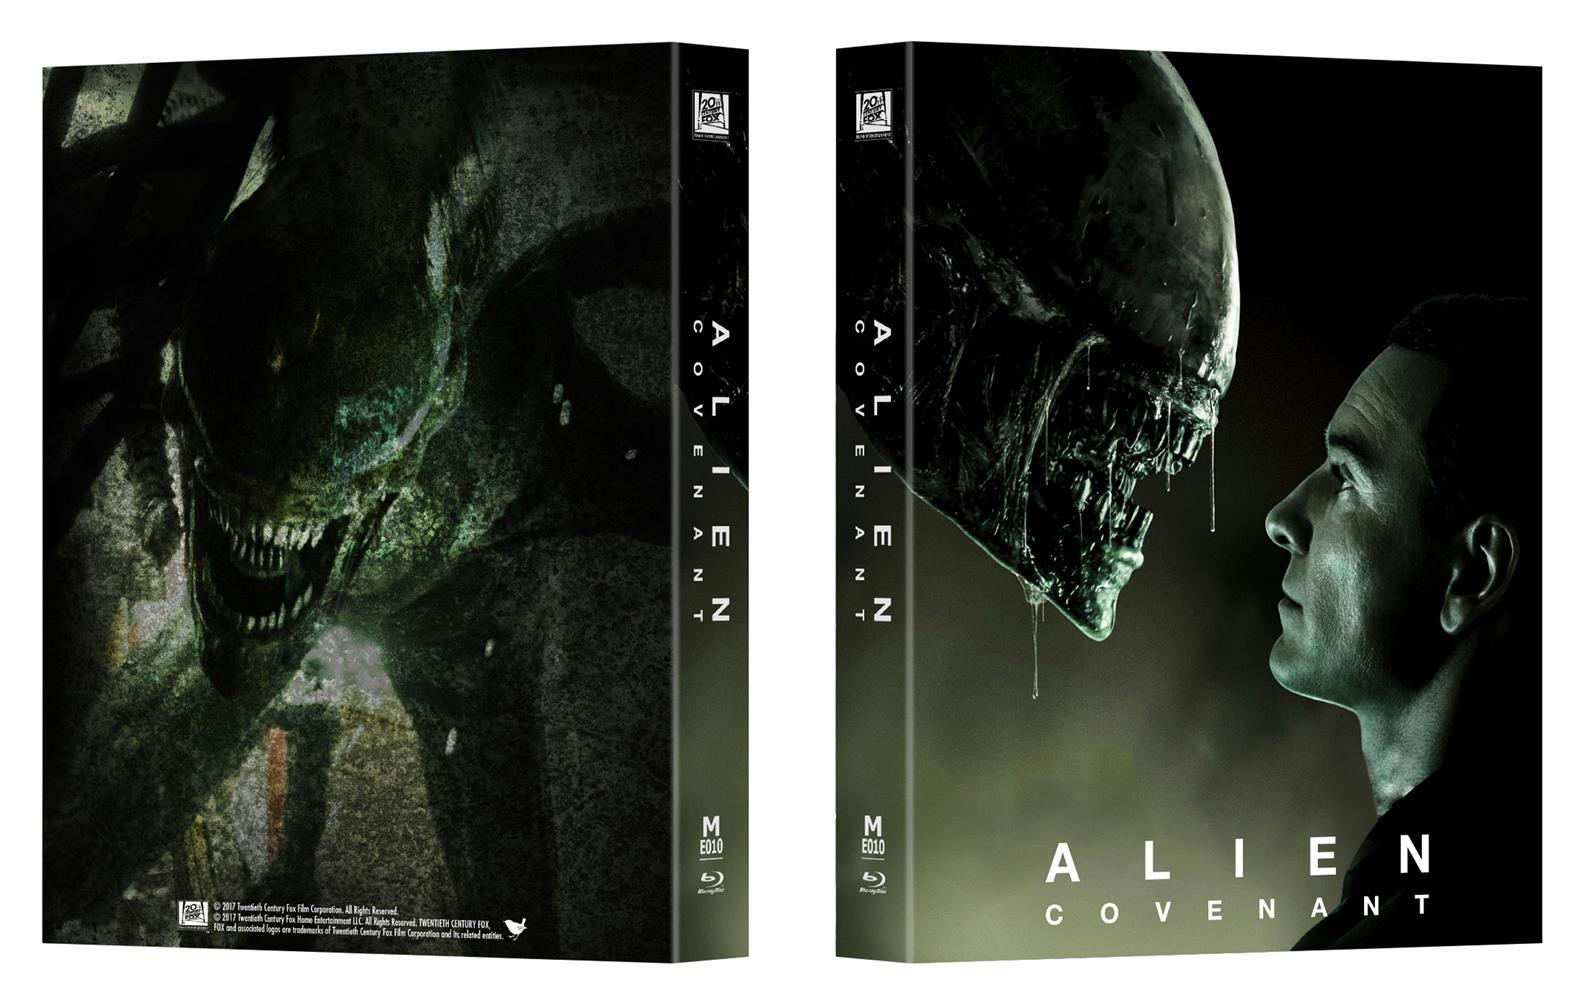 alien covenant steelbook manta lab fullslip lenti b